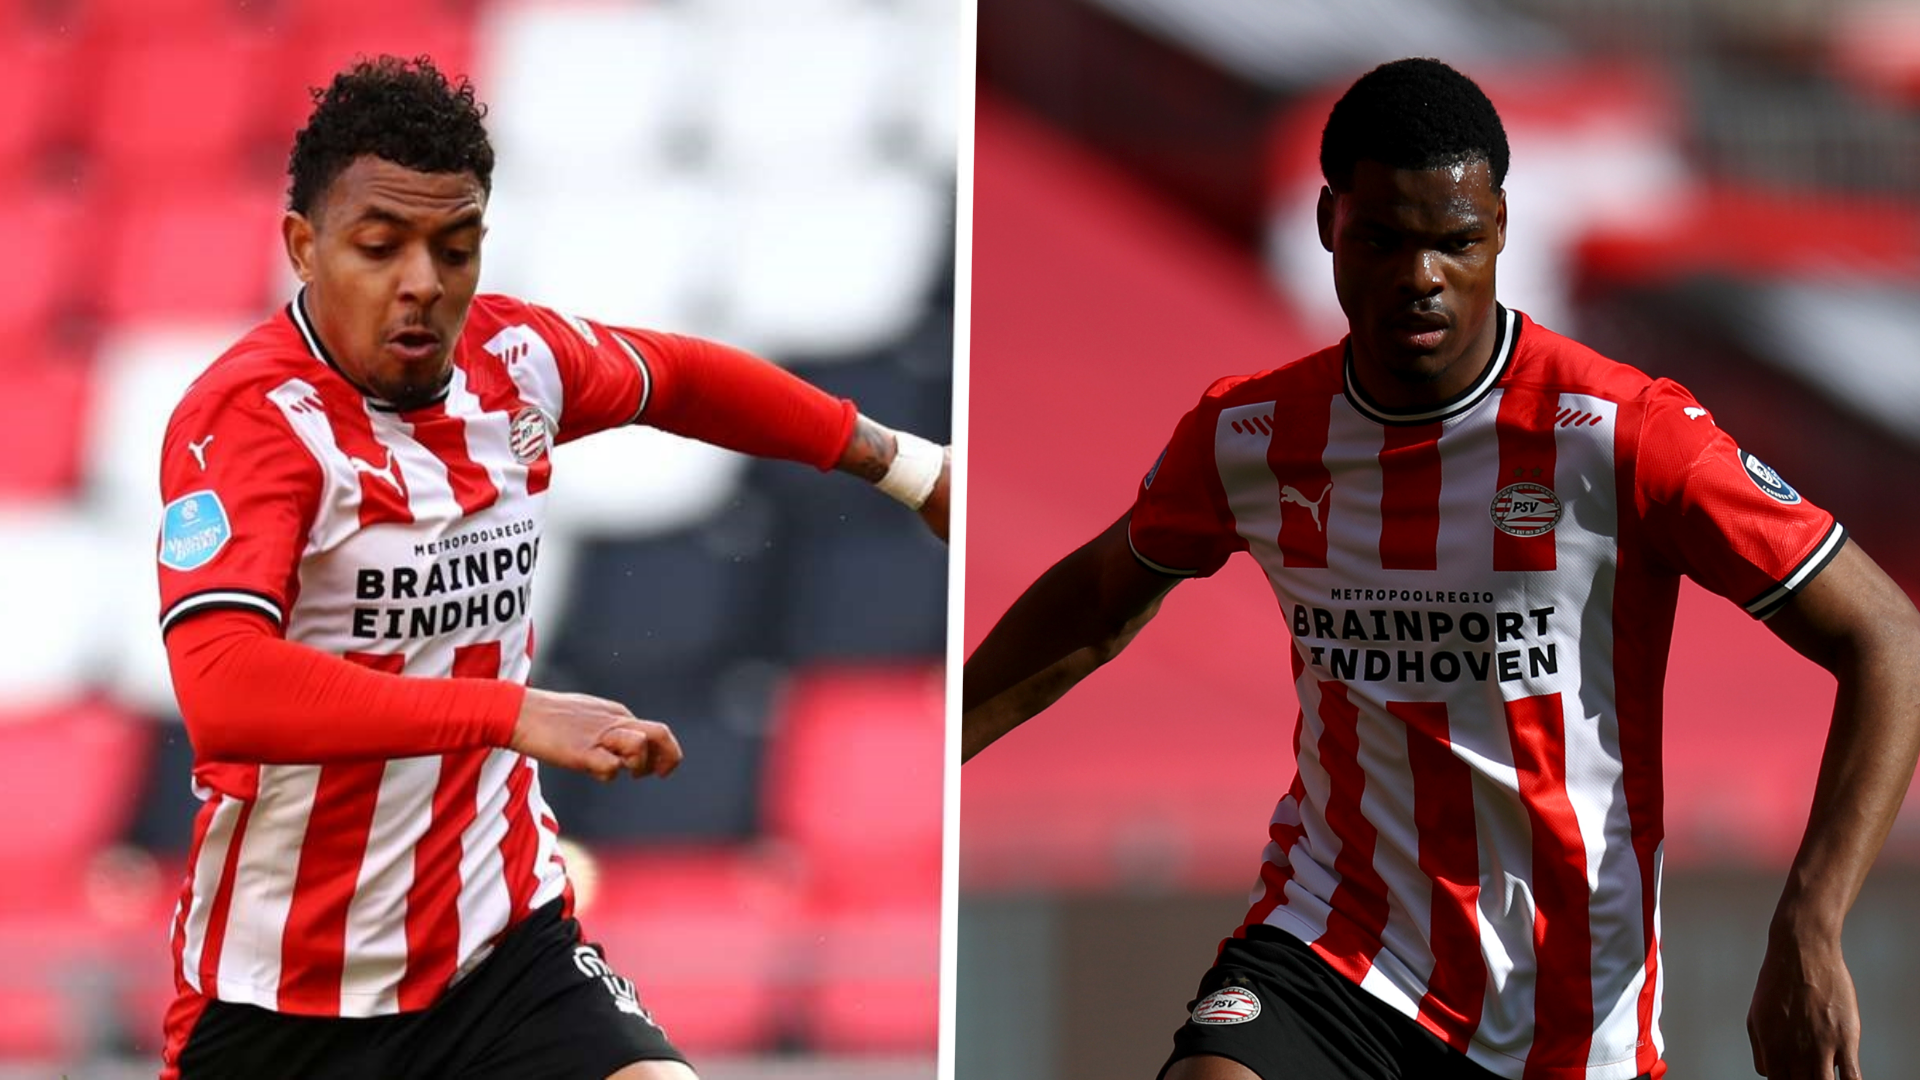 In-demand duo Malen and Dumfries will likely leave PSV, says coach Schmidt